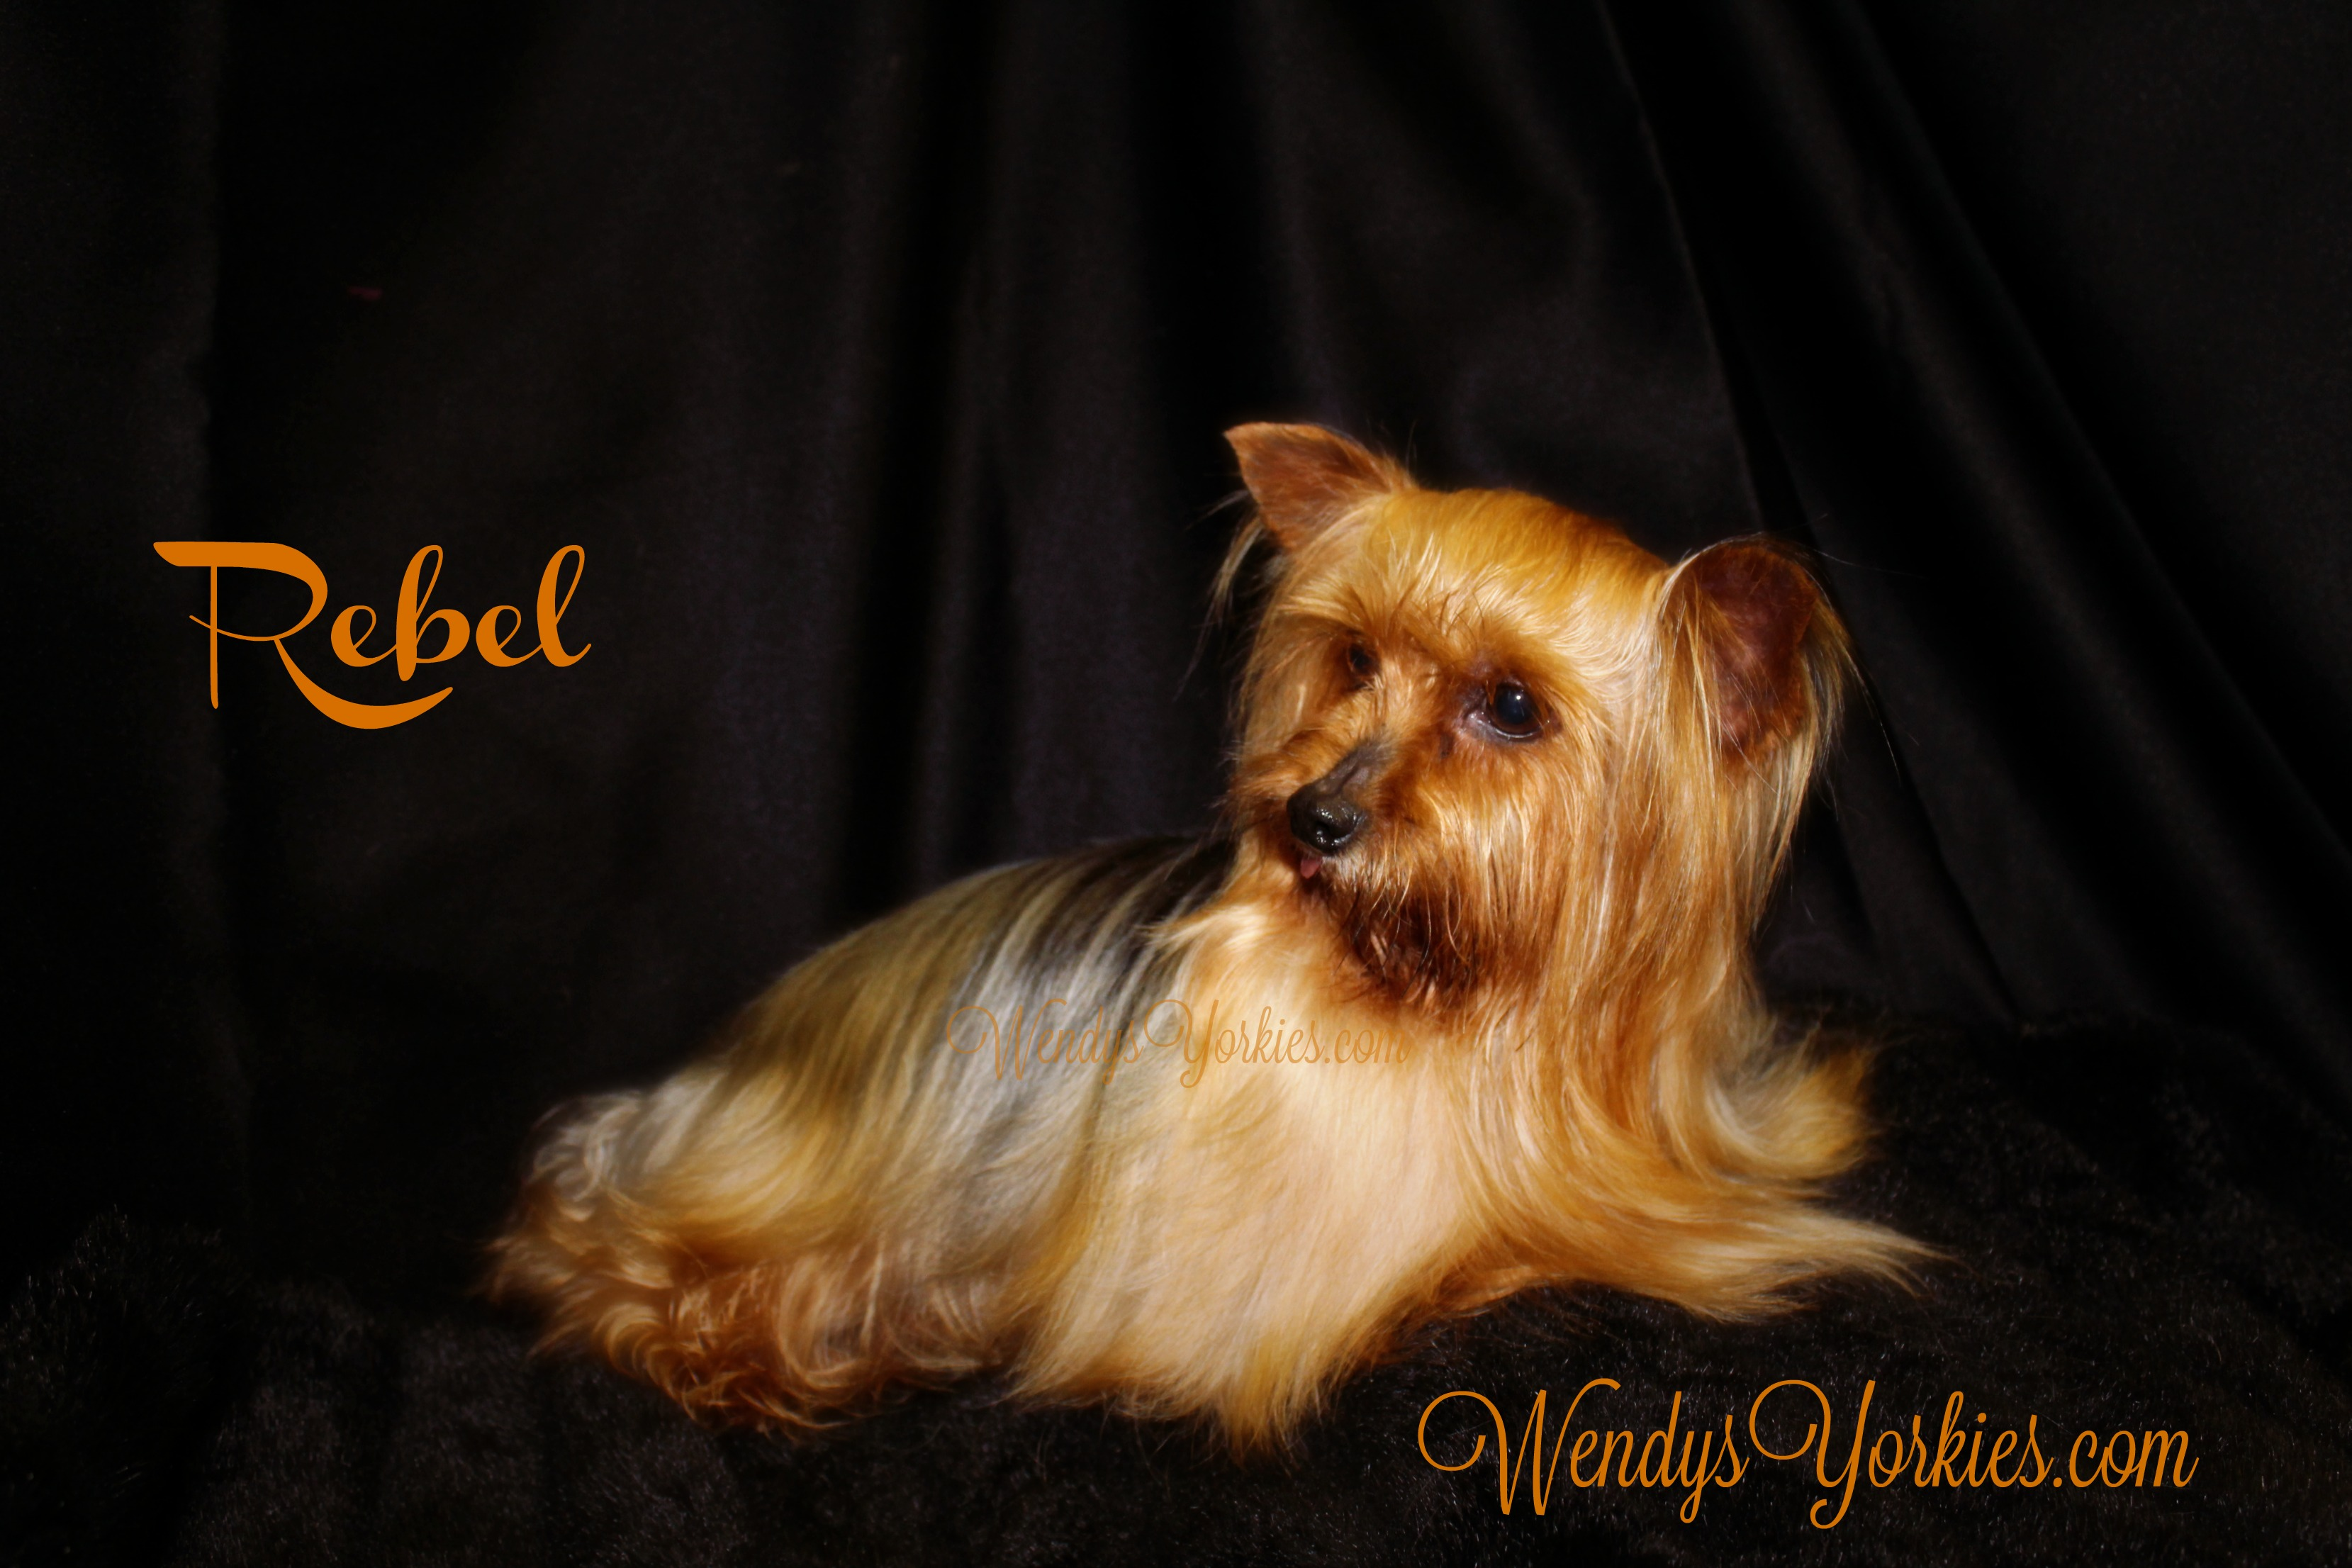 WendysYorkies.com, Yorkshire Terrier breeder, Male Stud Rebel